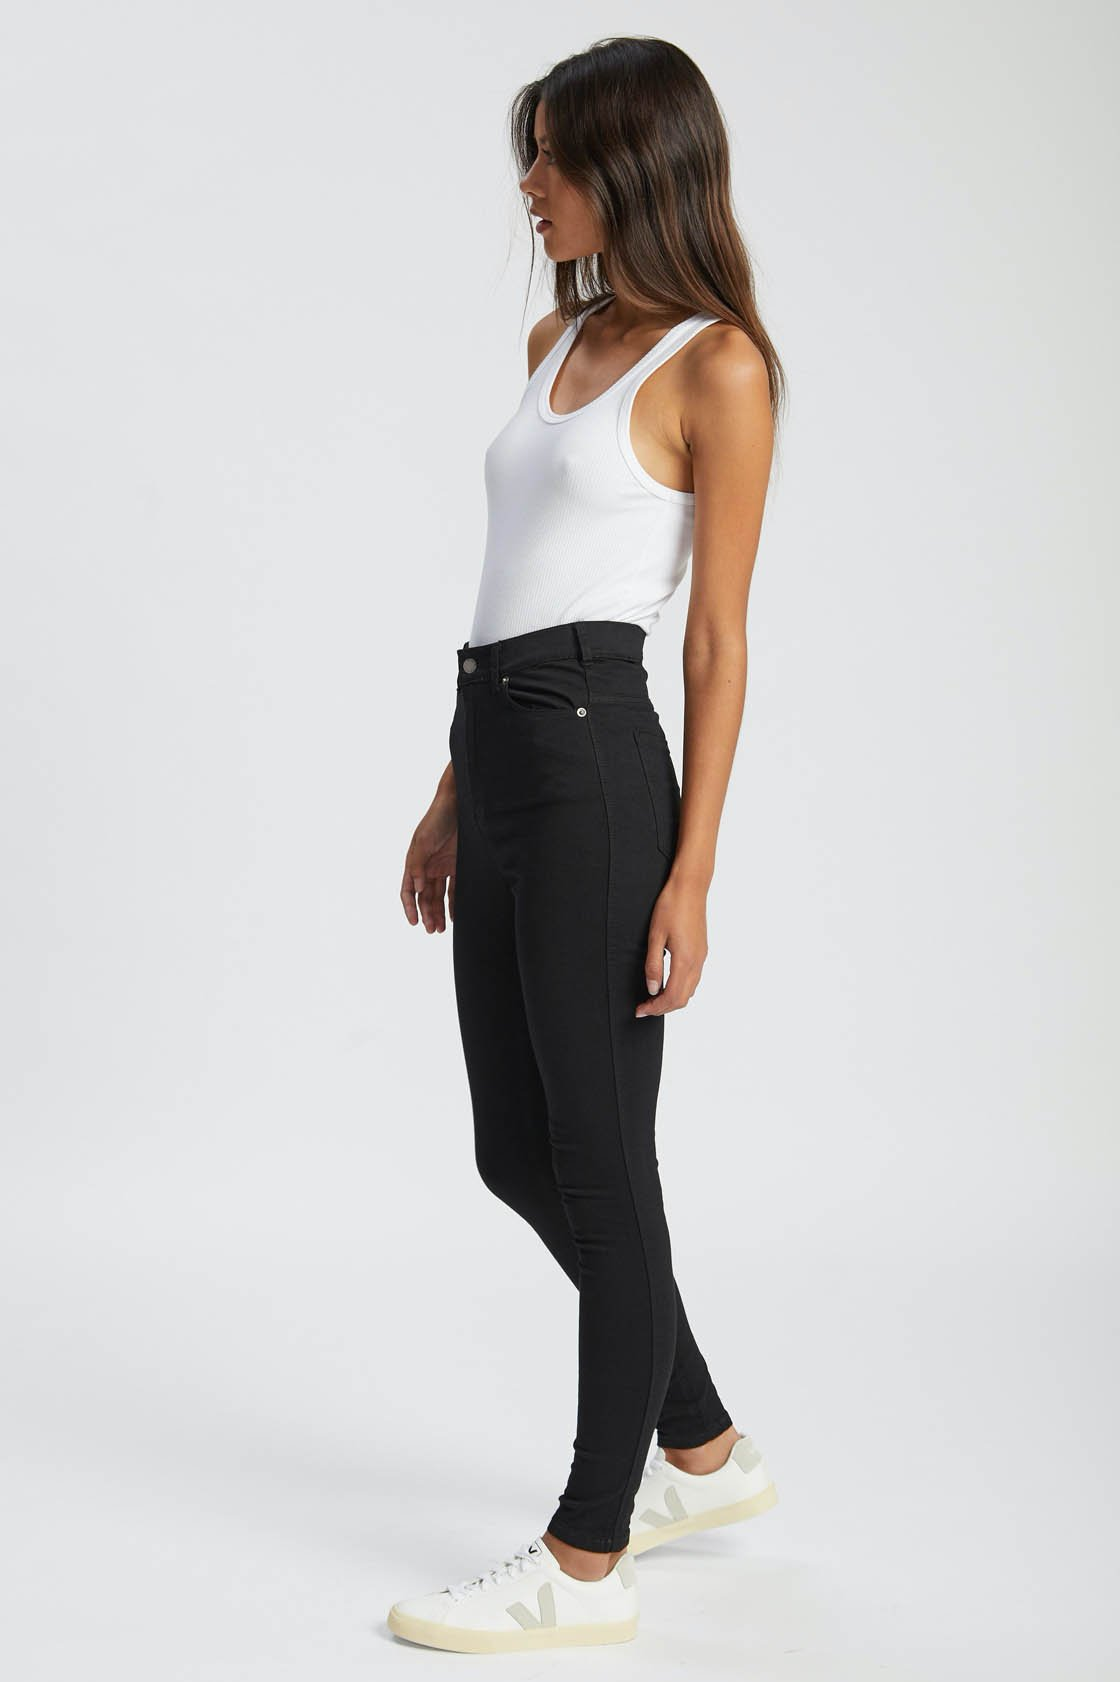 moxy denim jeans in black from dr denim